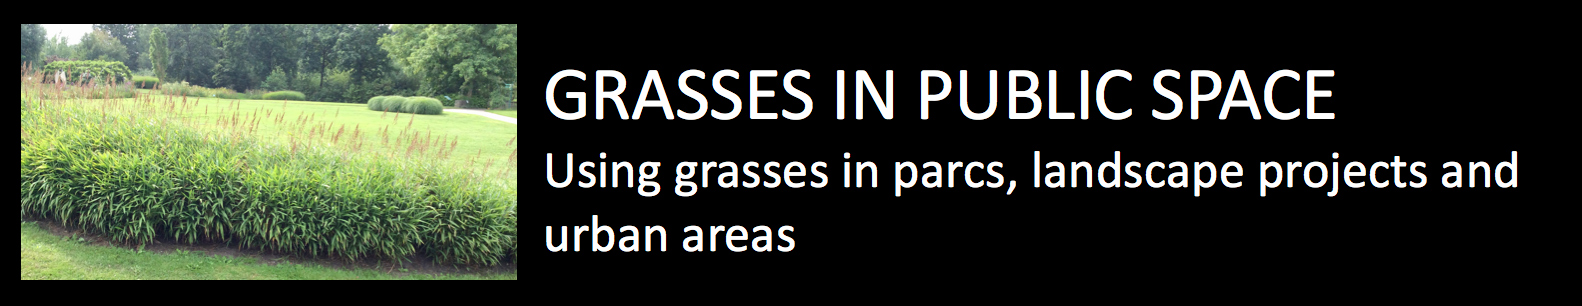 Grasses in public space using grasses in parcs landscap projects and urban areas